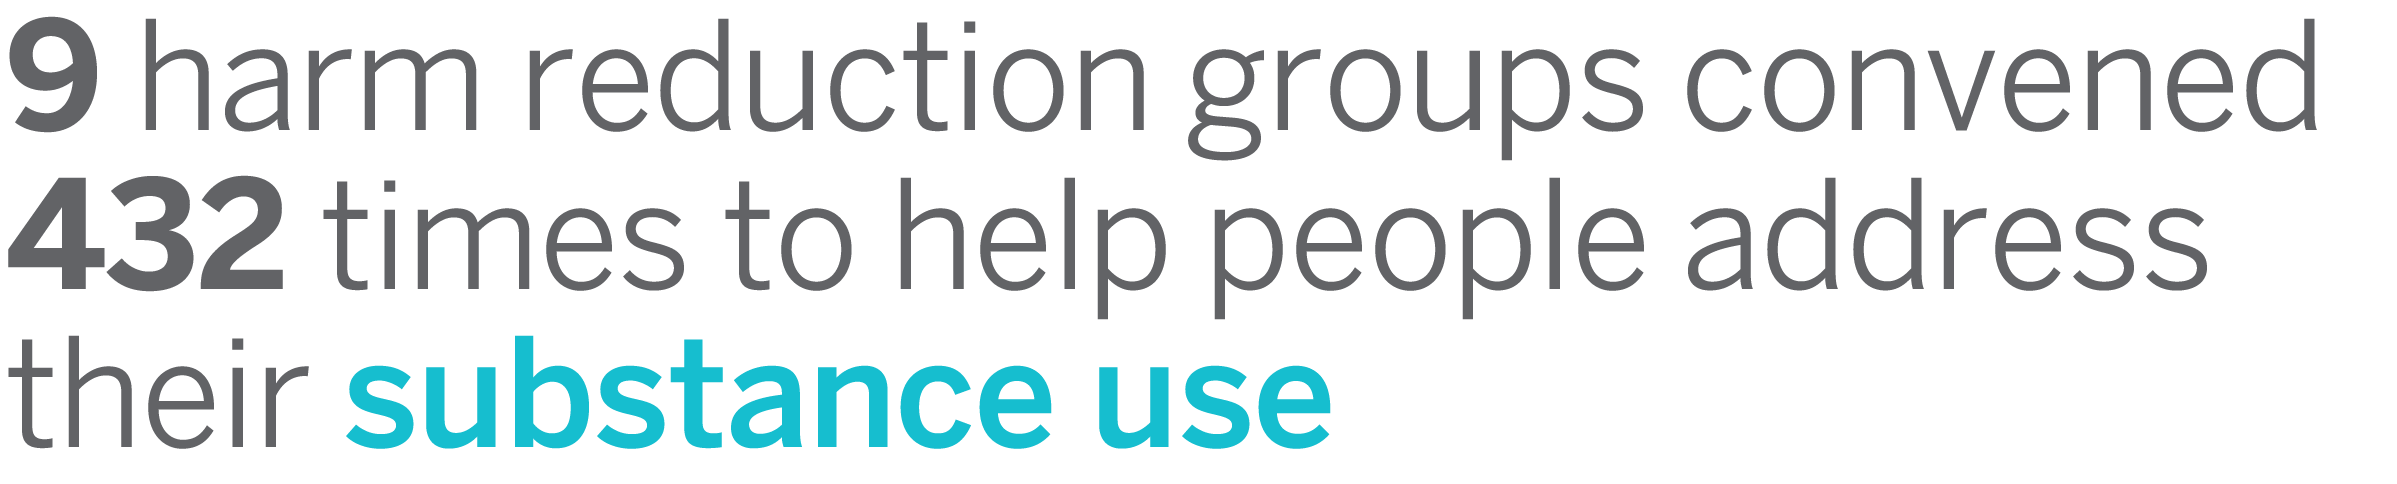 9 harm reduction groups convened 432 times to help people address their substance use